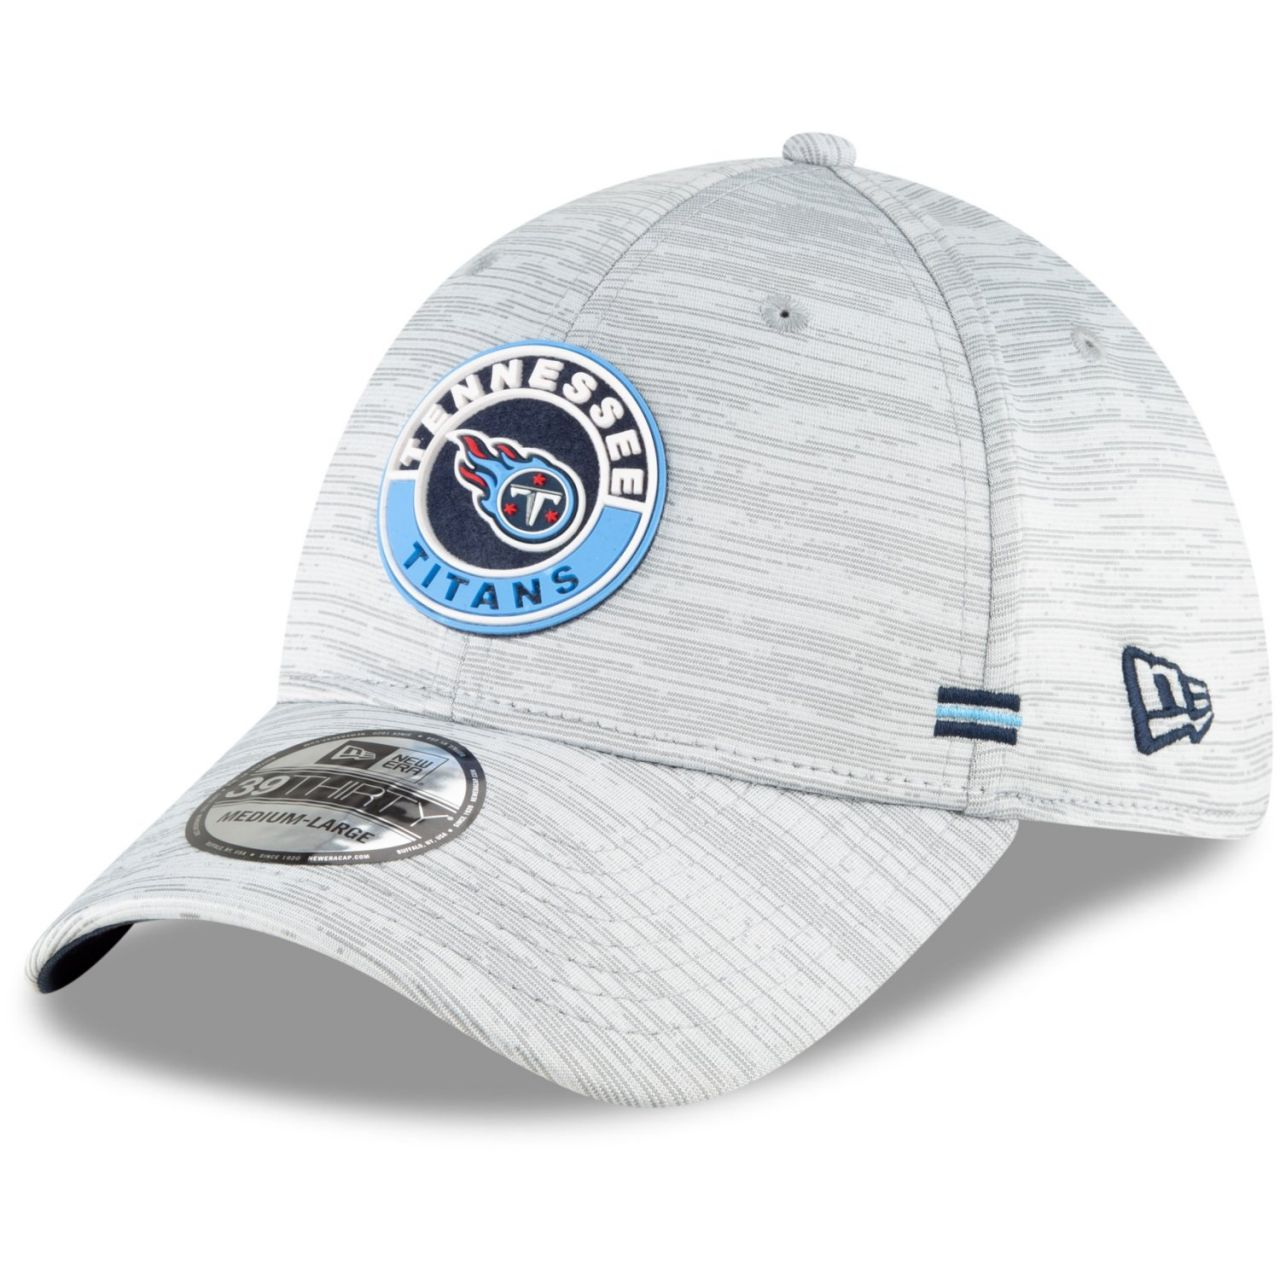 amfoo - New Era 39Thirty Cap - SIDELINE 2020 Tennessee Titans